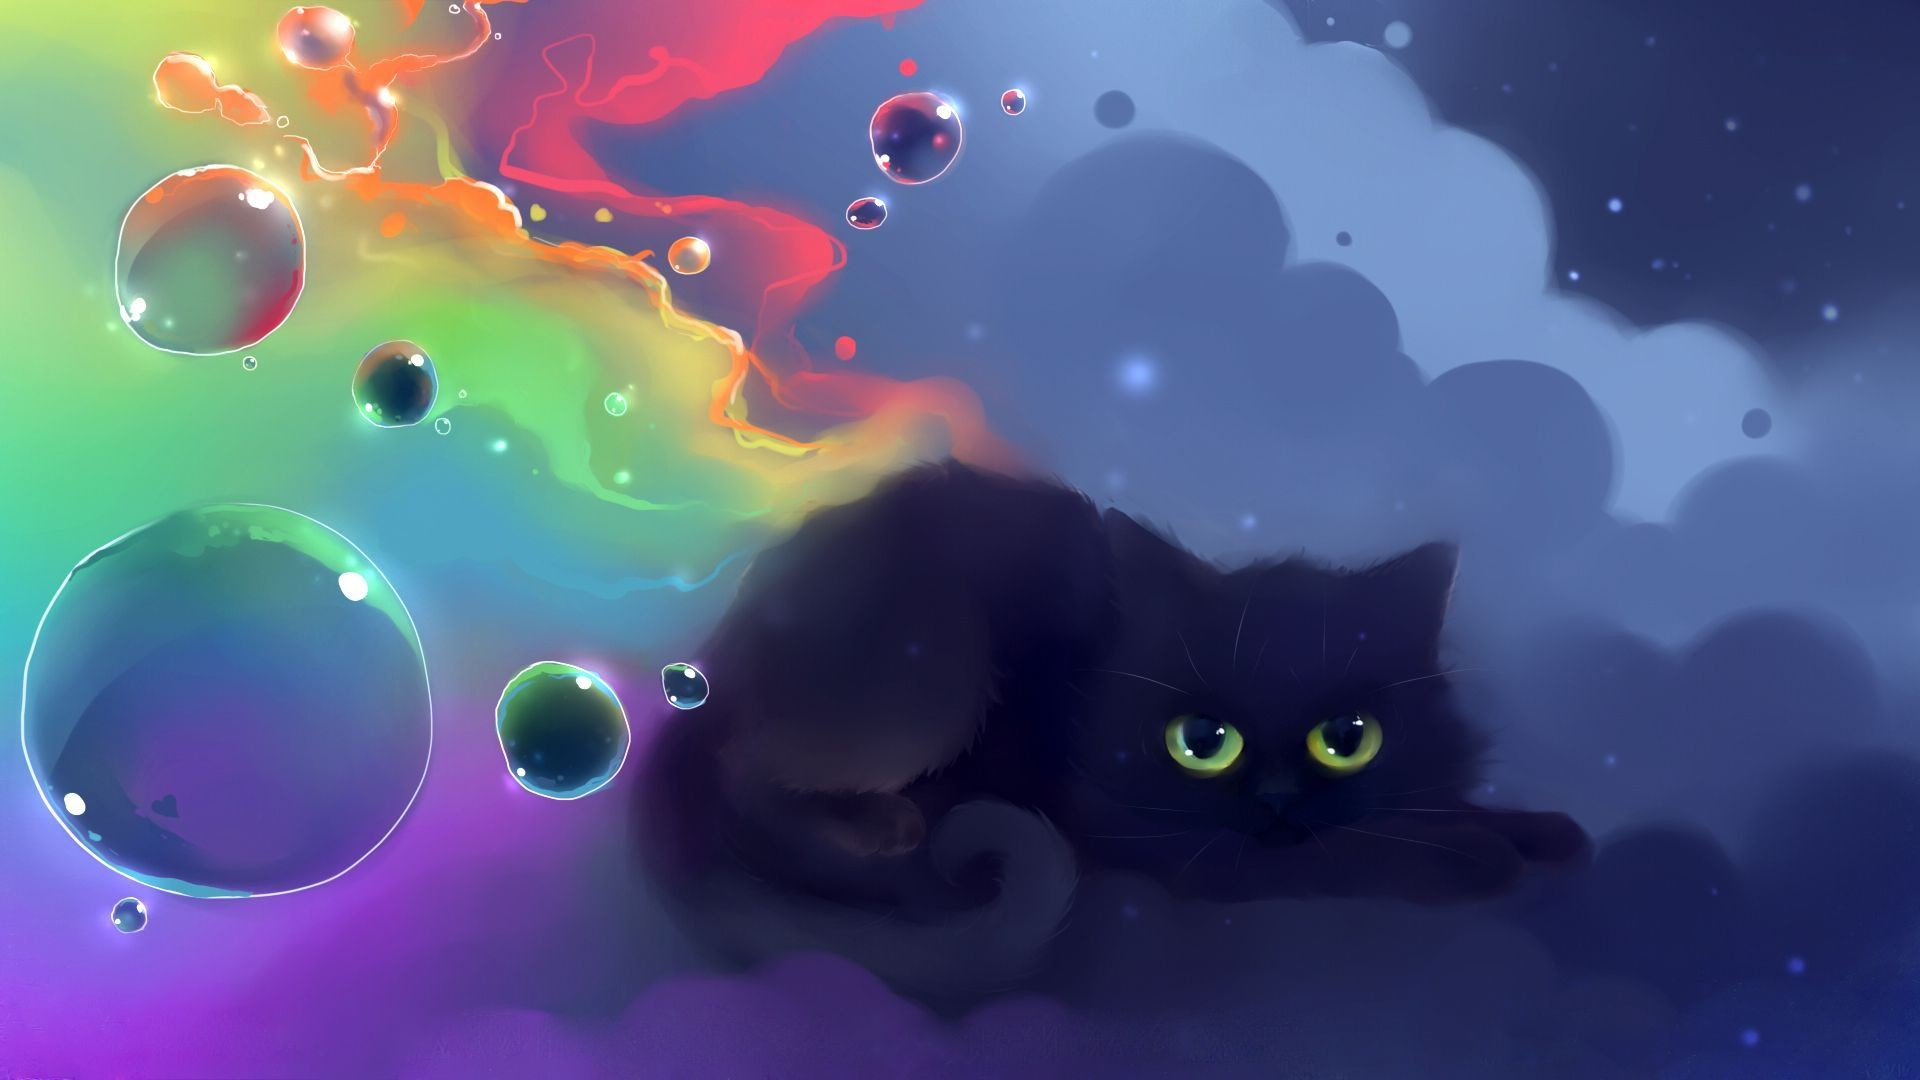 Warrior cat wallpapers backgrounds 56 images - Cat wallpaper cartoon ...